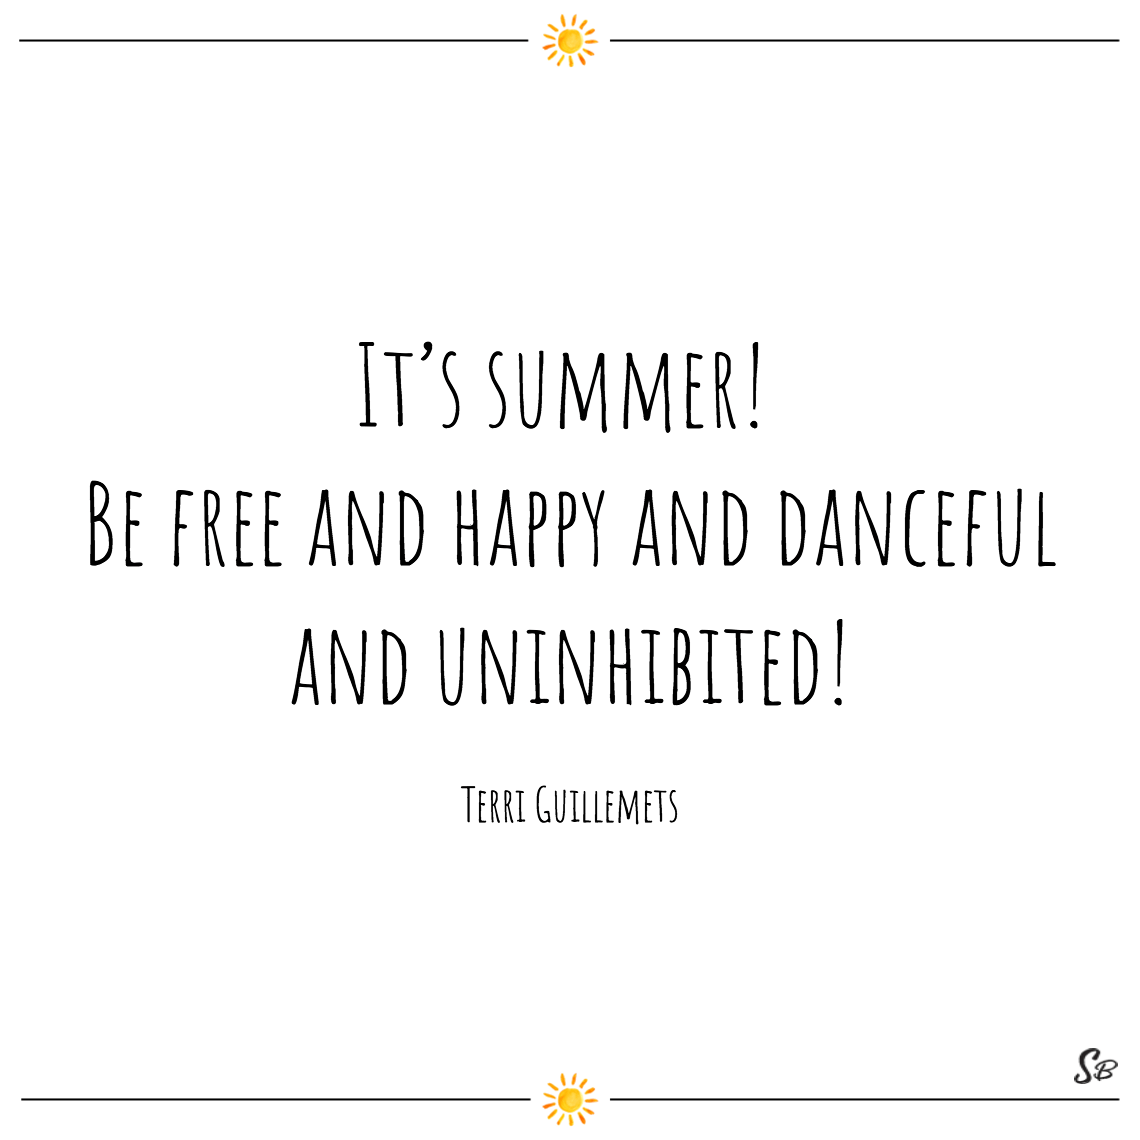 It's summer! be free and happy and danceful and uninhibited! terri guillemets